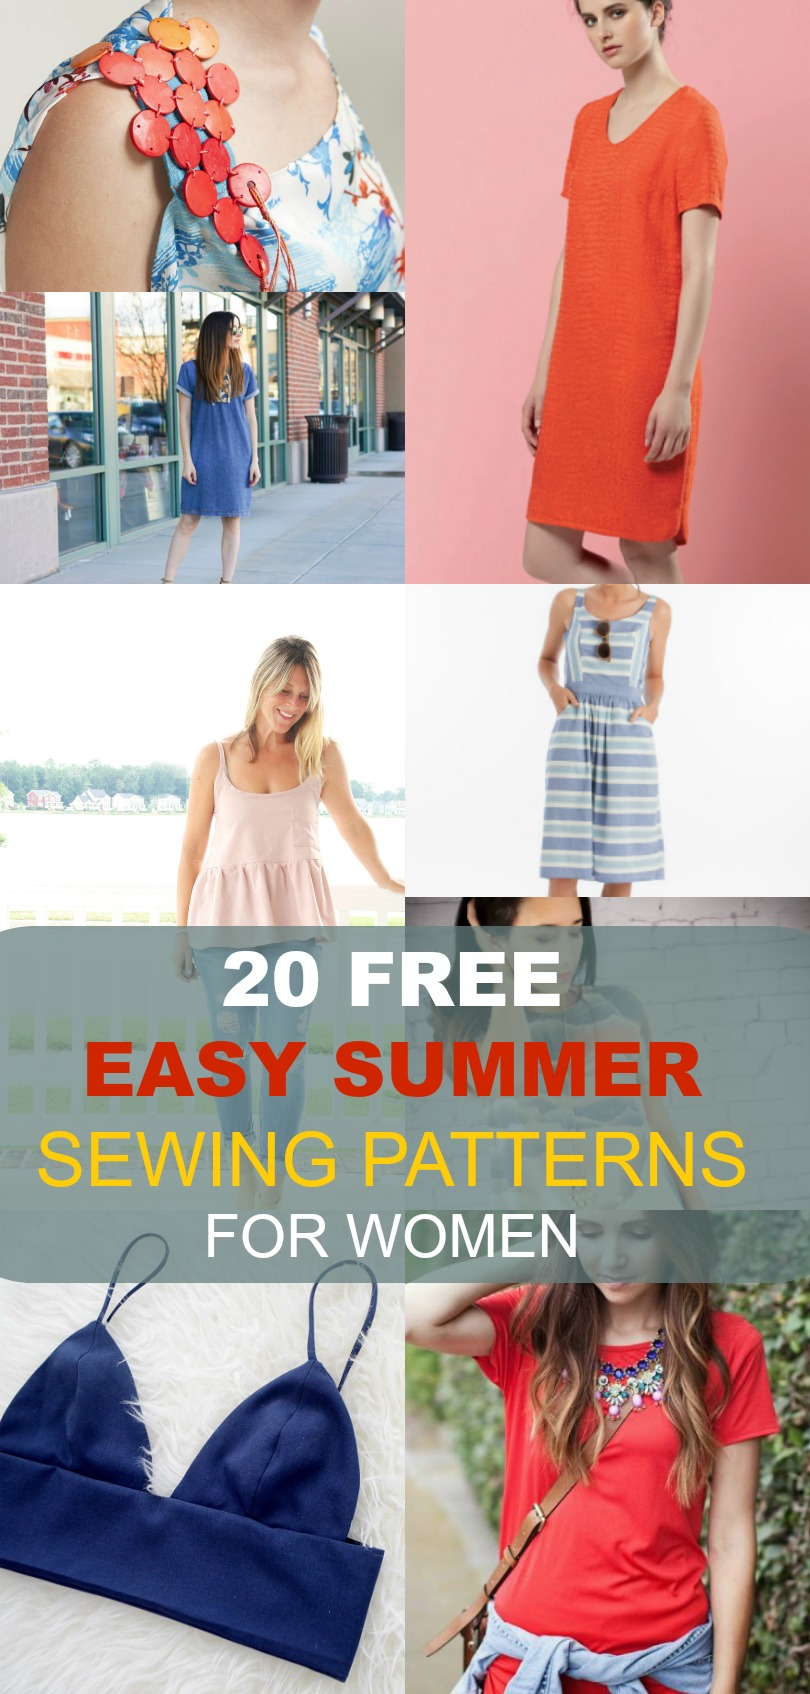 20 Free 12 Granny Square Crochet Patterns: FREE SEWING PATTERNS: 20 Easy Summer Patterns For Women